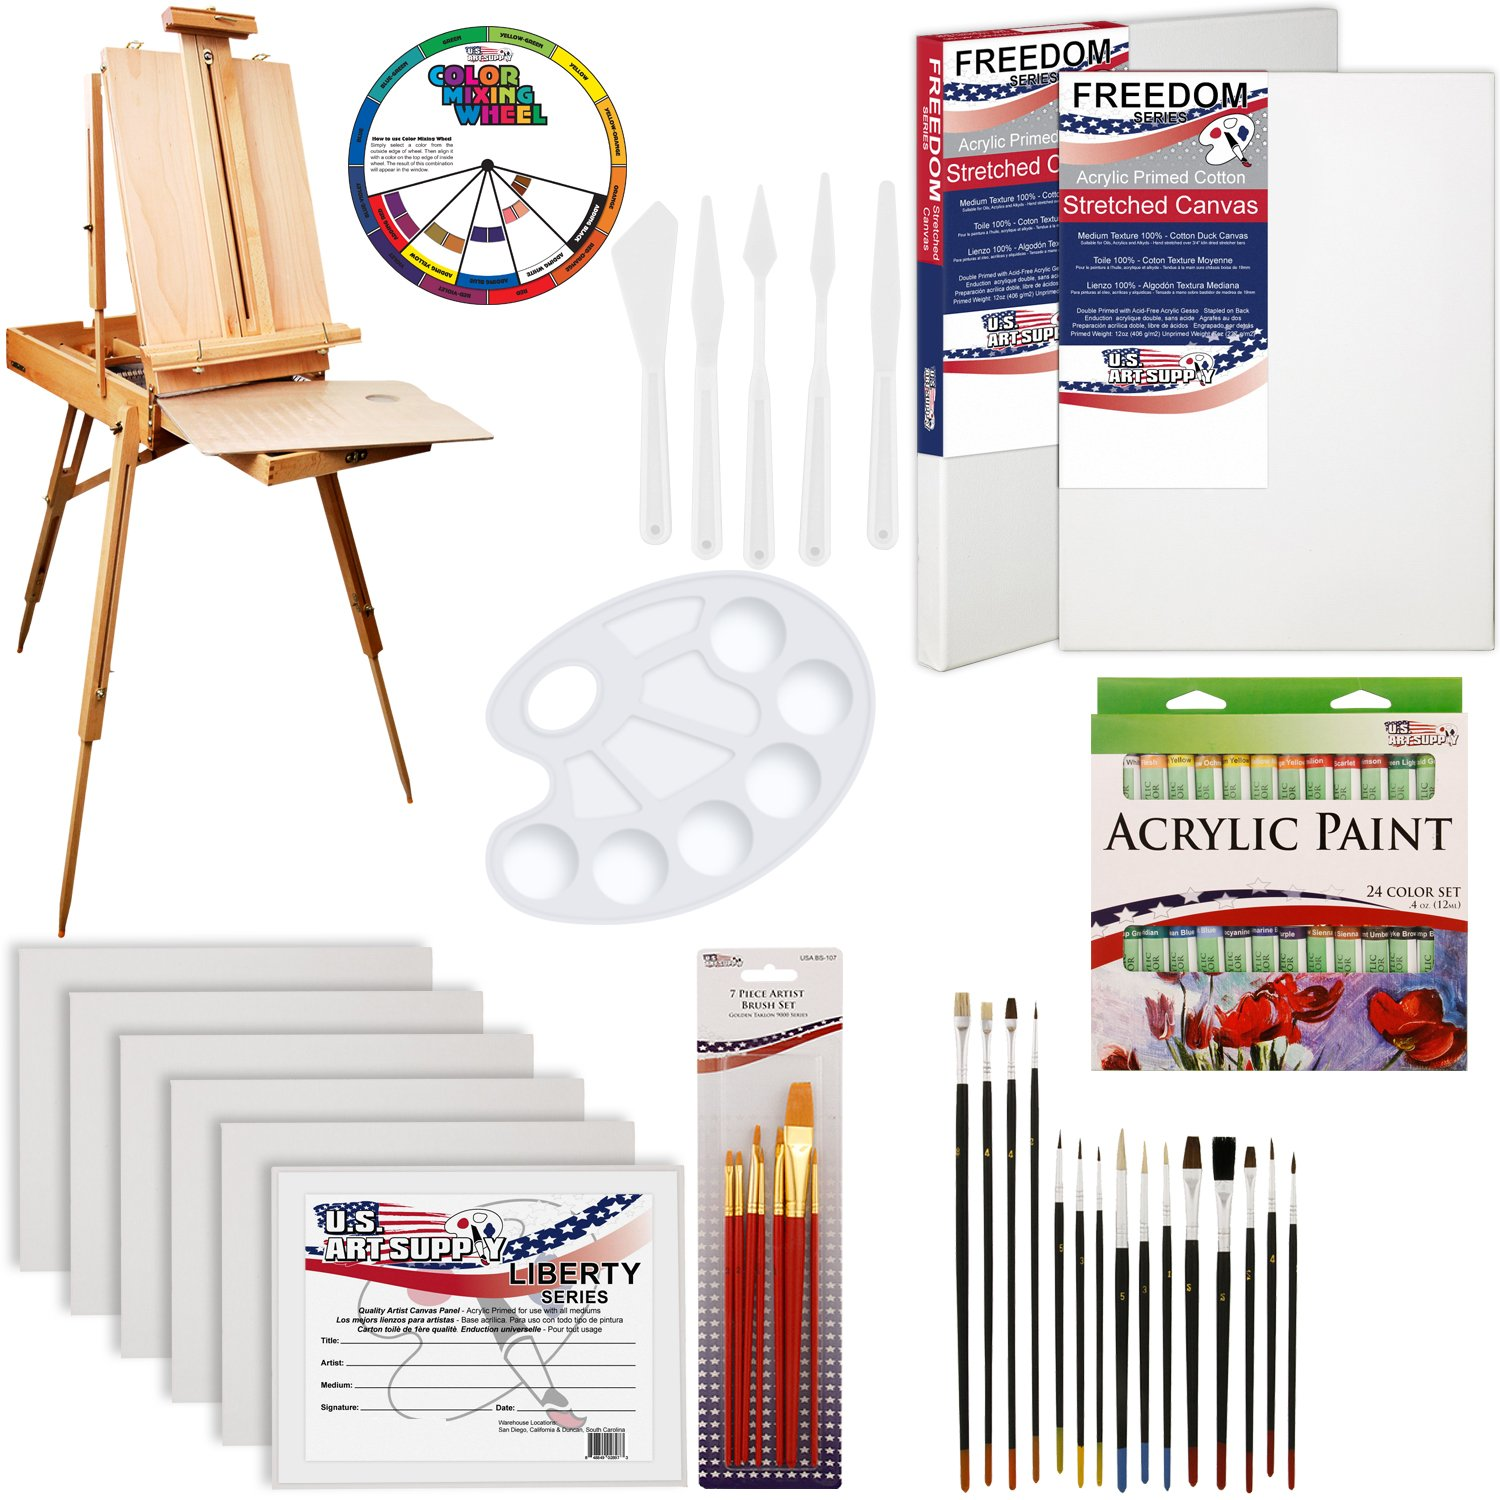 U.S. Art Supply 62 Piece Acrylic Painting Kit with Coronado French Easel, Acrylic Paint, 16x20 Stretched Canvases, 11x14 Canvas Panels, Nylon Paint Brushes, Multipurpose Paint Brushes and more US Art Supply KIT-ACR-59